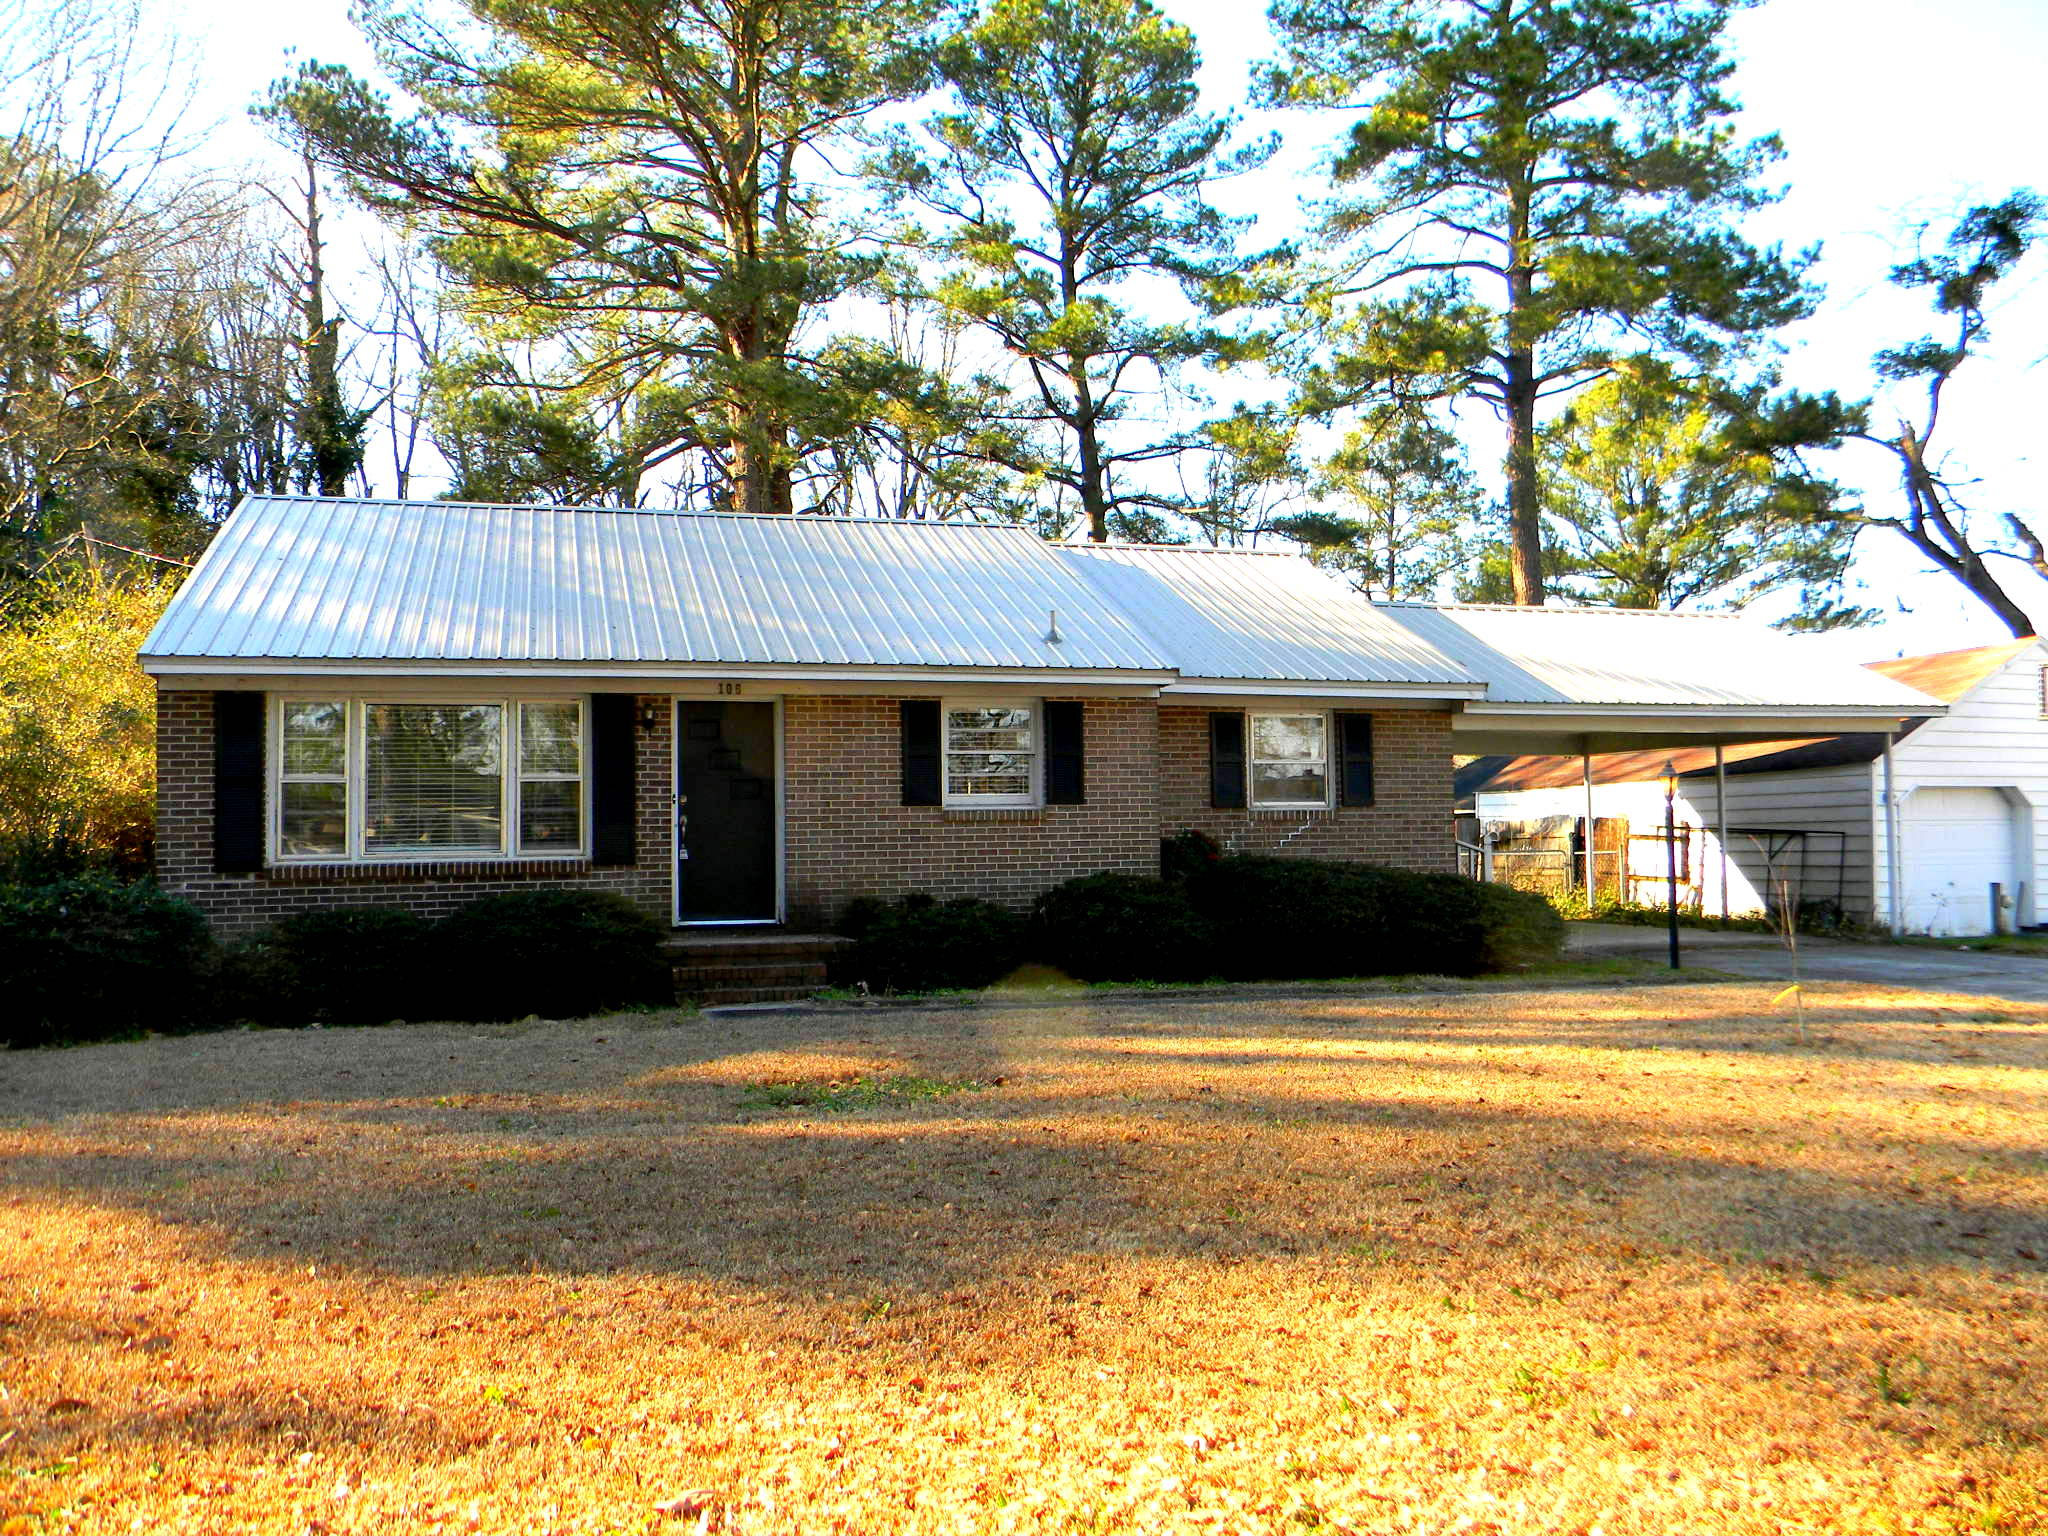 106 5TH STREET SOUTH , Macclesfield, North Carolina 27852